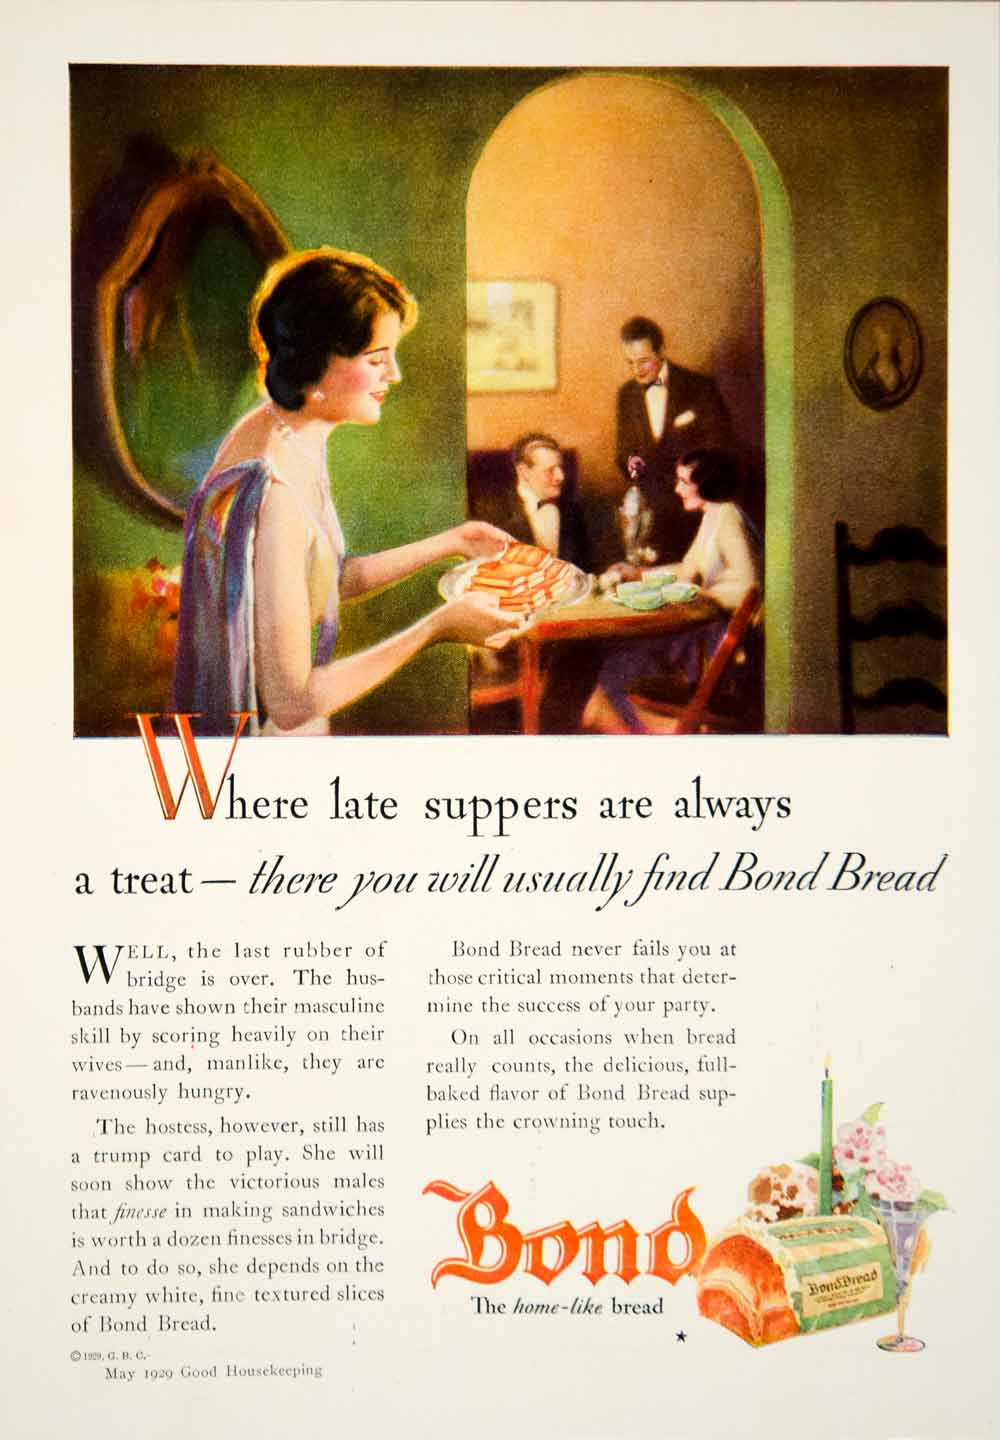 1929 Ad Bond Bread Dinner Party Hostess Food Home Like House Cards Game YGH2